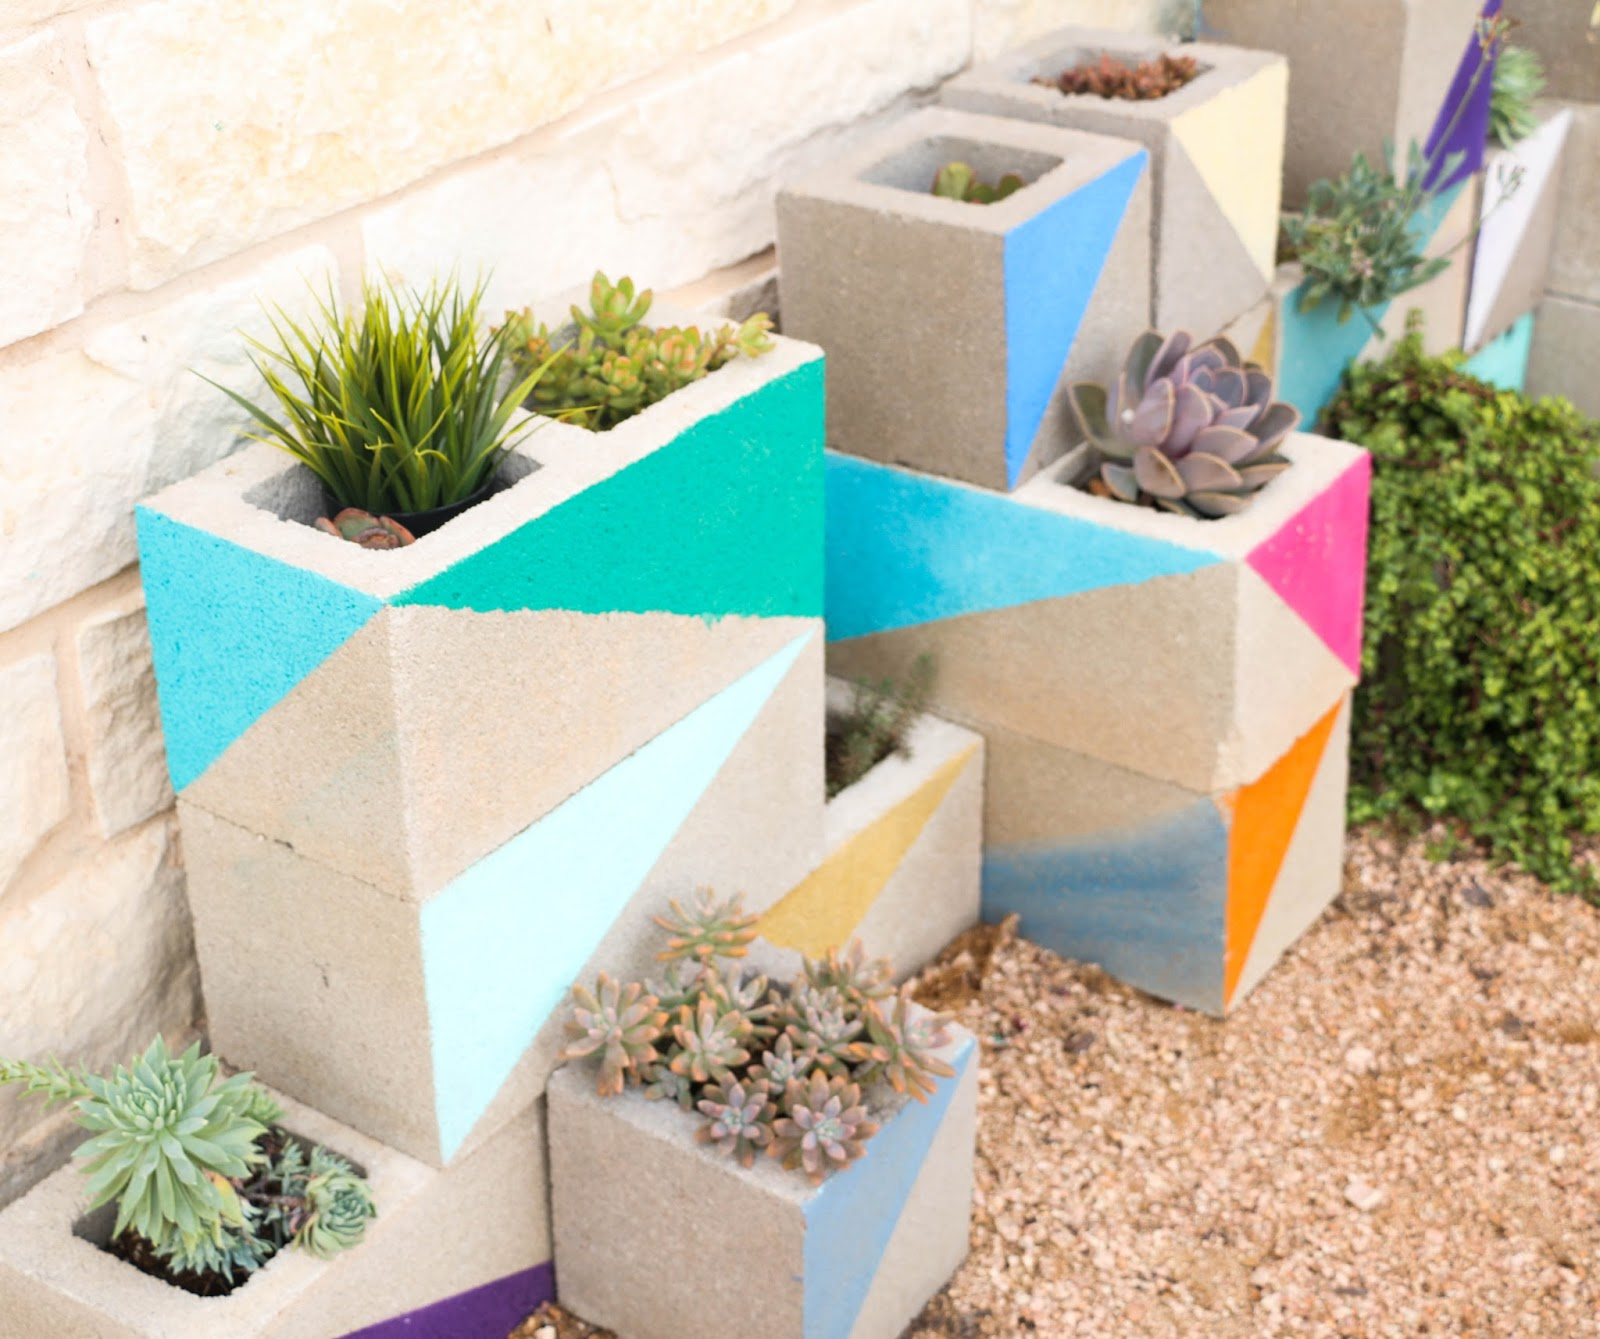 d%2Bcinderblock%2Bplanter%2B2 25 Stunning Planter Concrete Blocks Alternatives to Transform Your Backyard And That Are All Your Front Porch Needs Interior